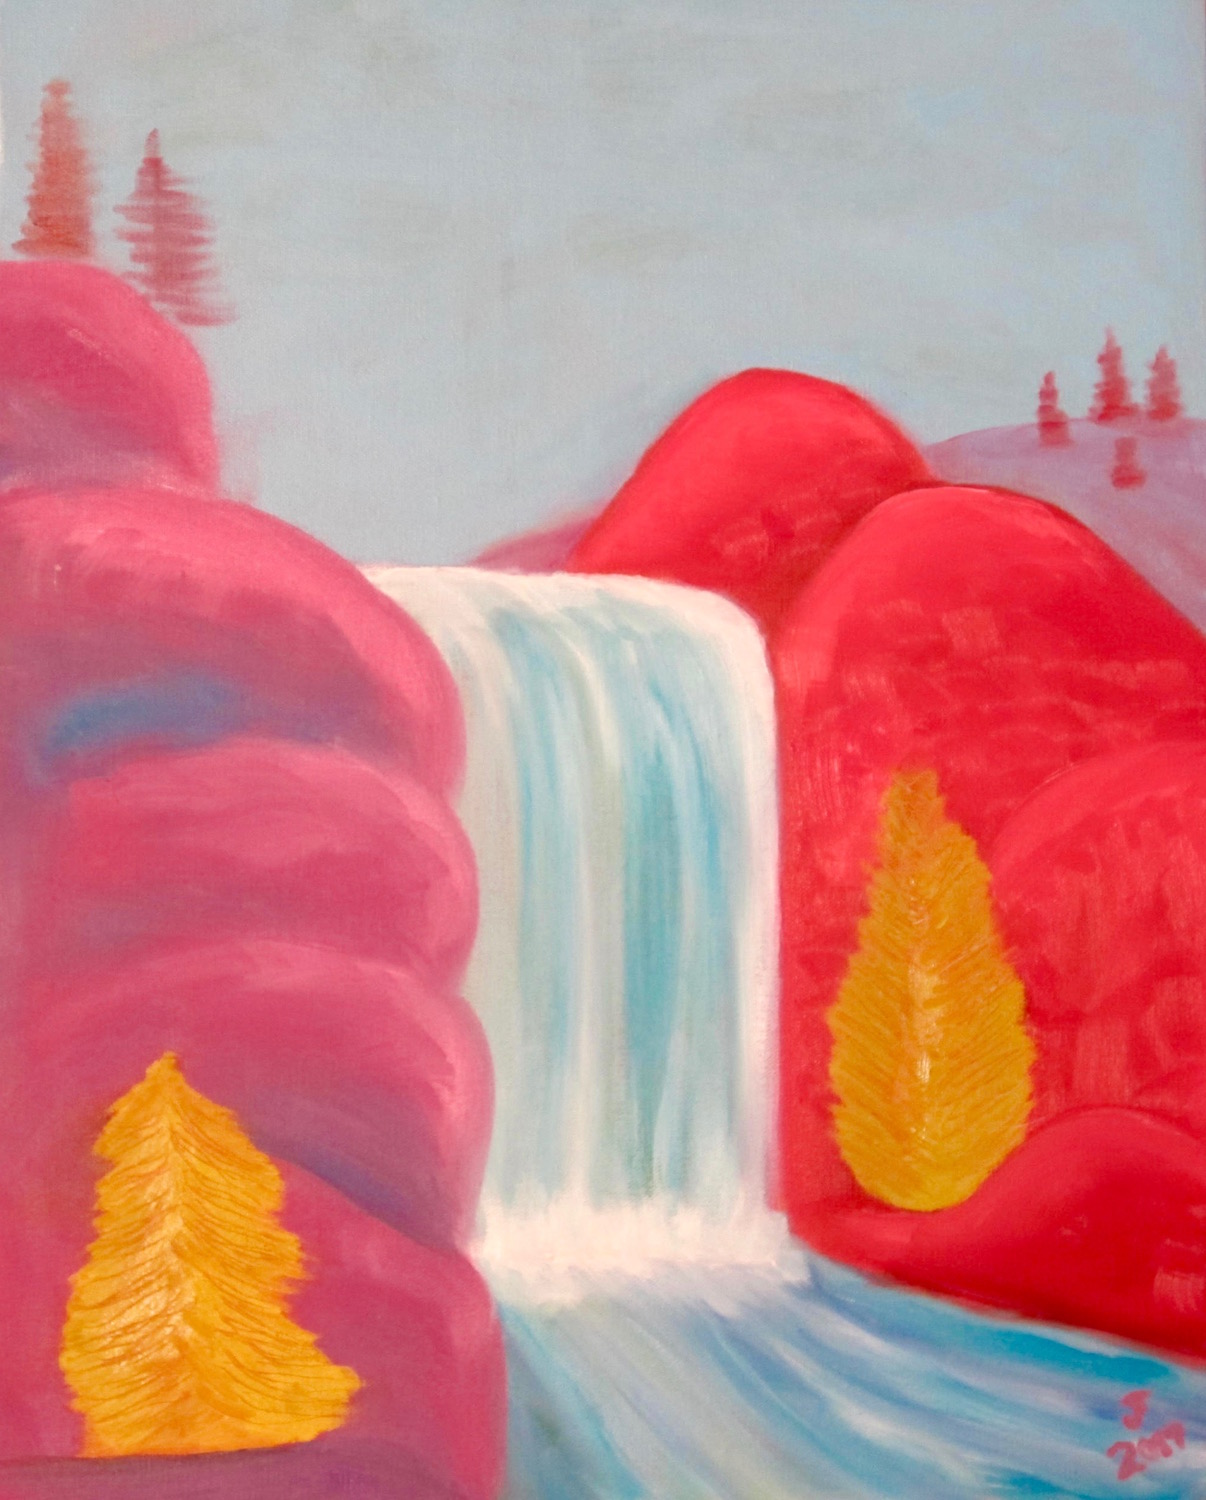 Red Rock Falls - Oil on Canvas18 x 24Now residing in Sanford, ME